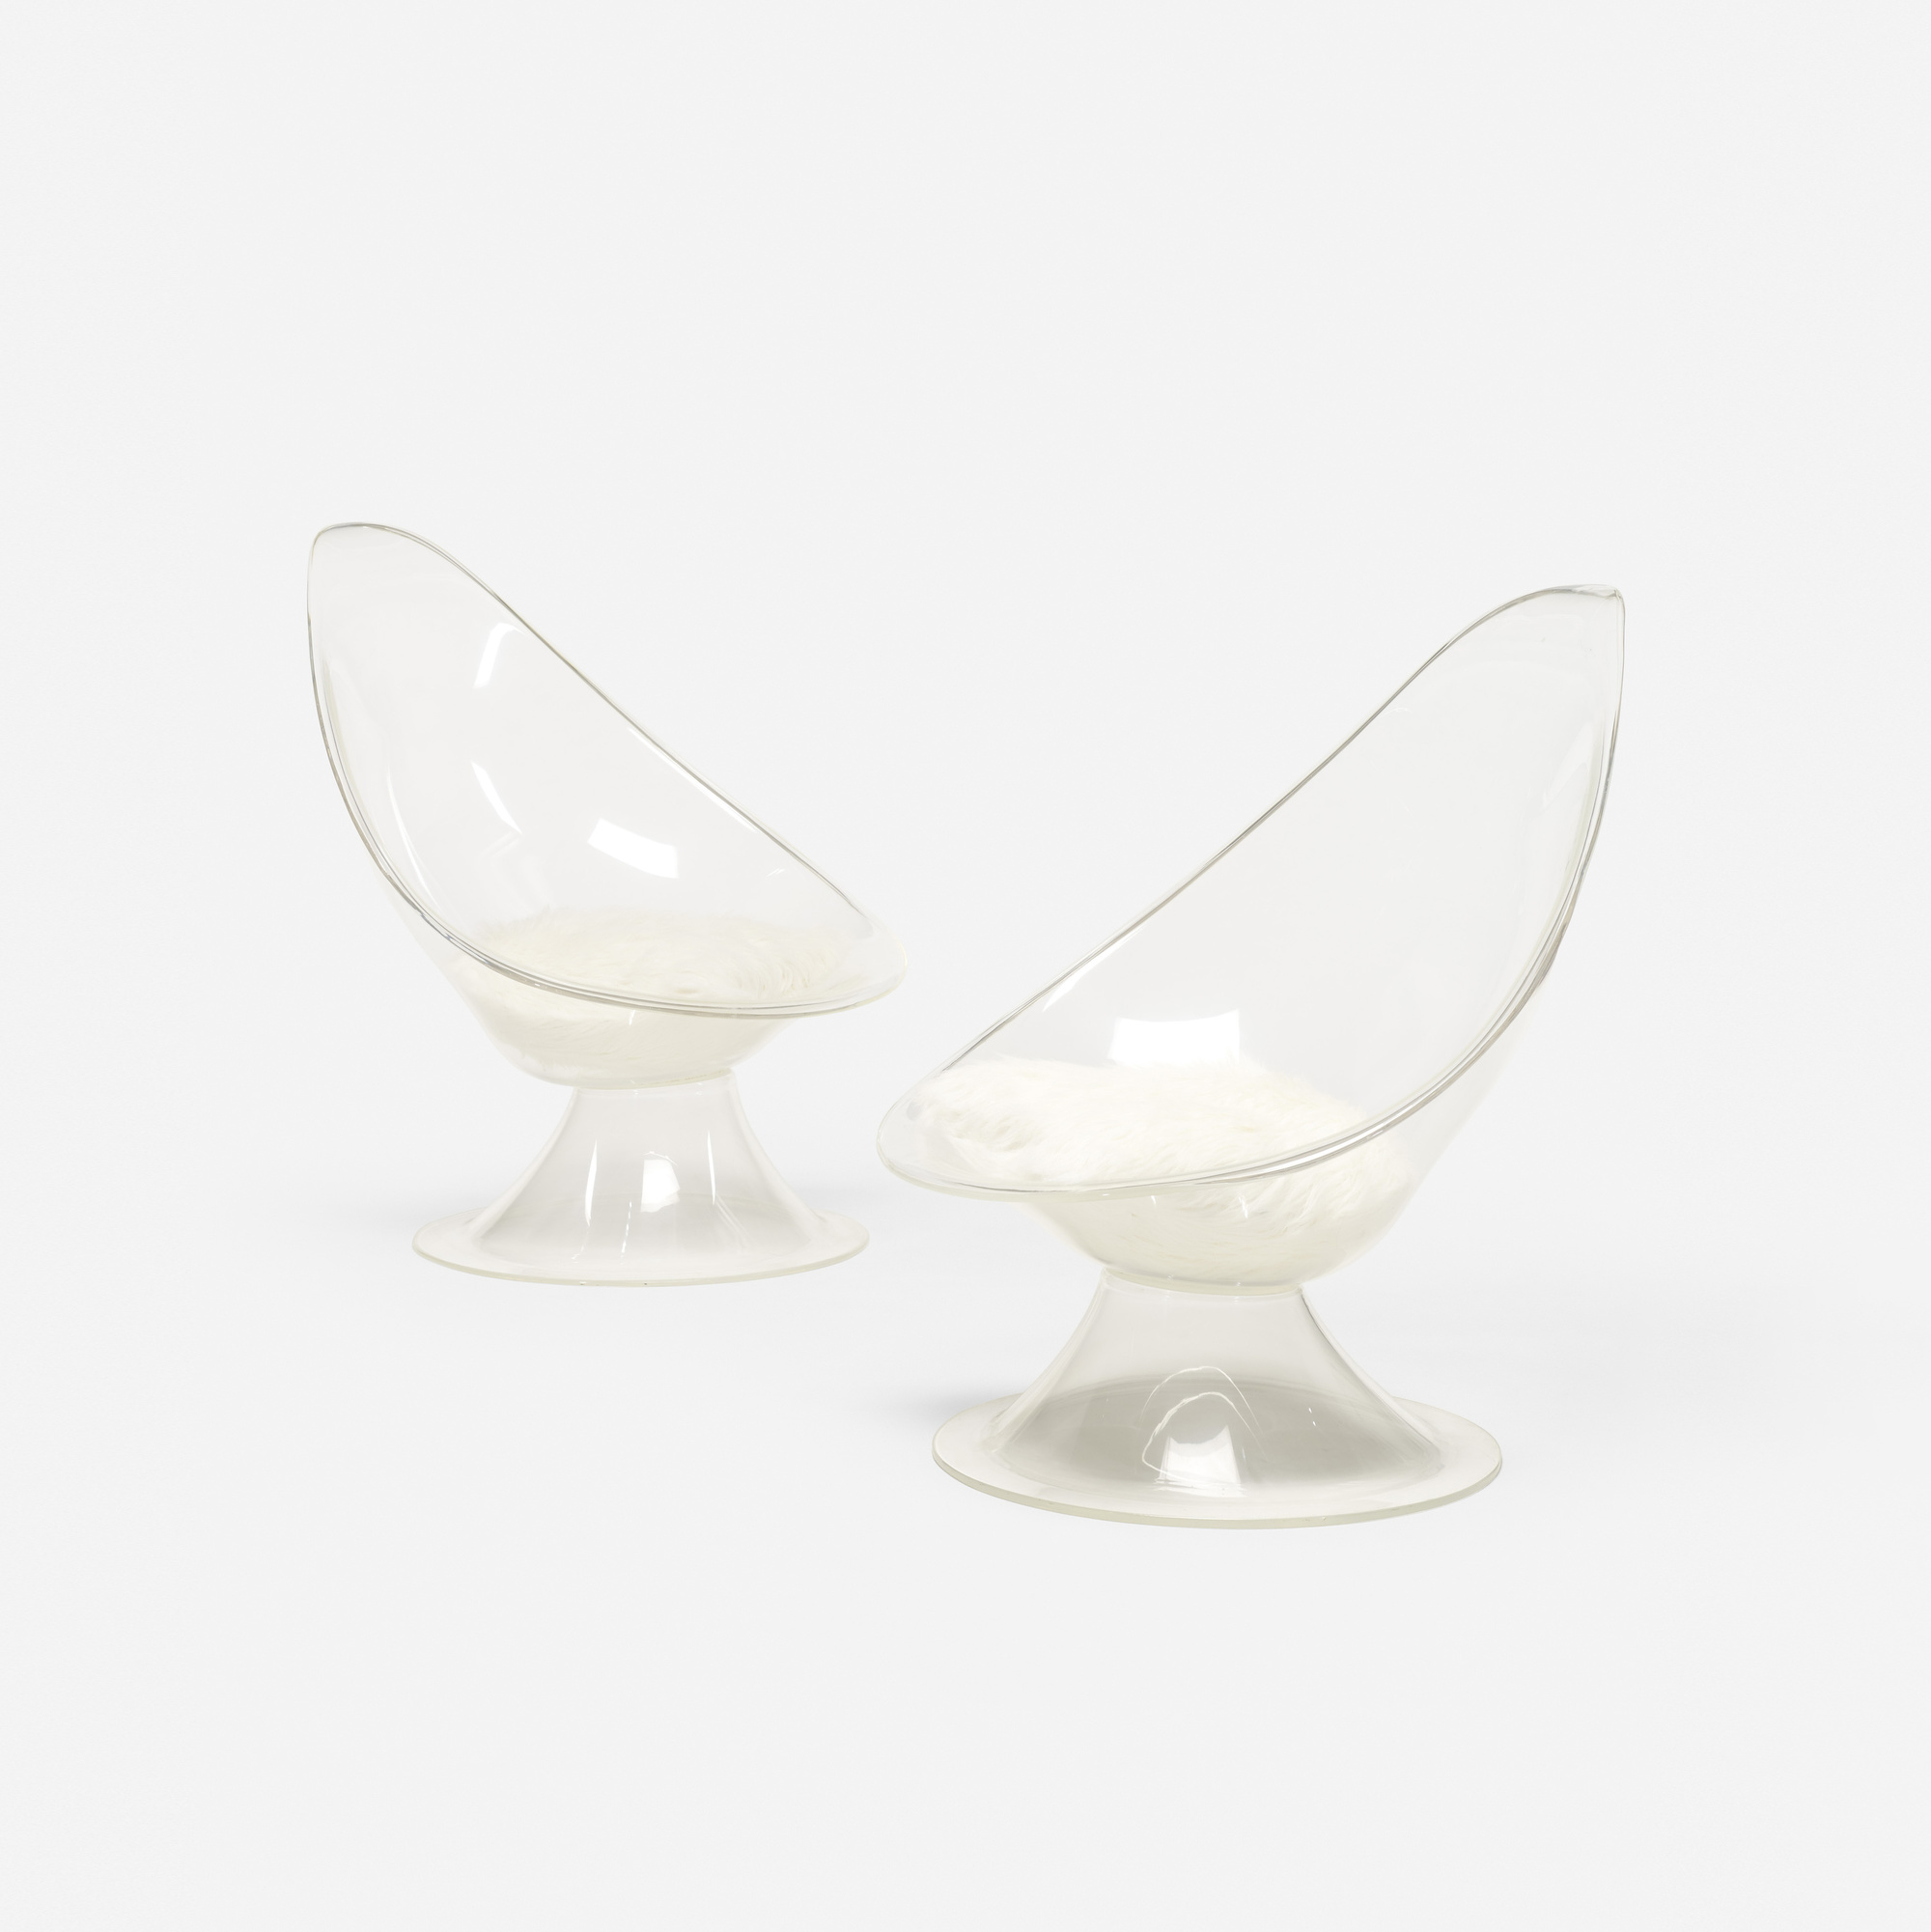 399: Erwine and Estelle Laverne / pair of Lily chairs from the Invisible Group (1 of 2)